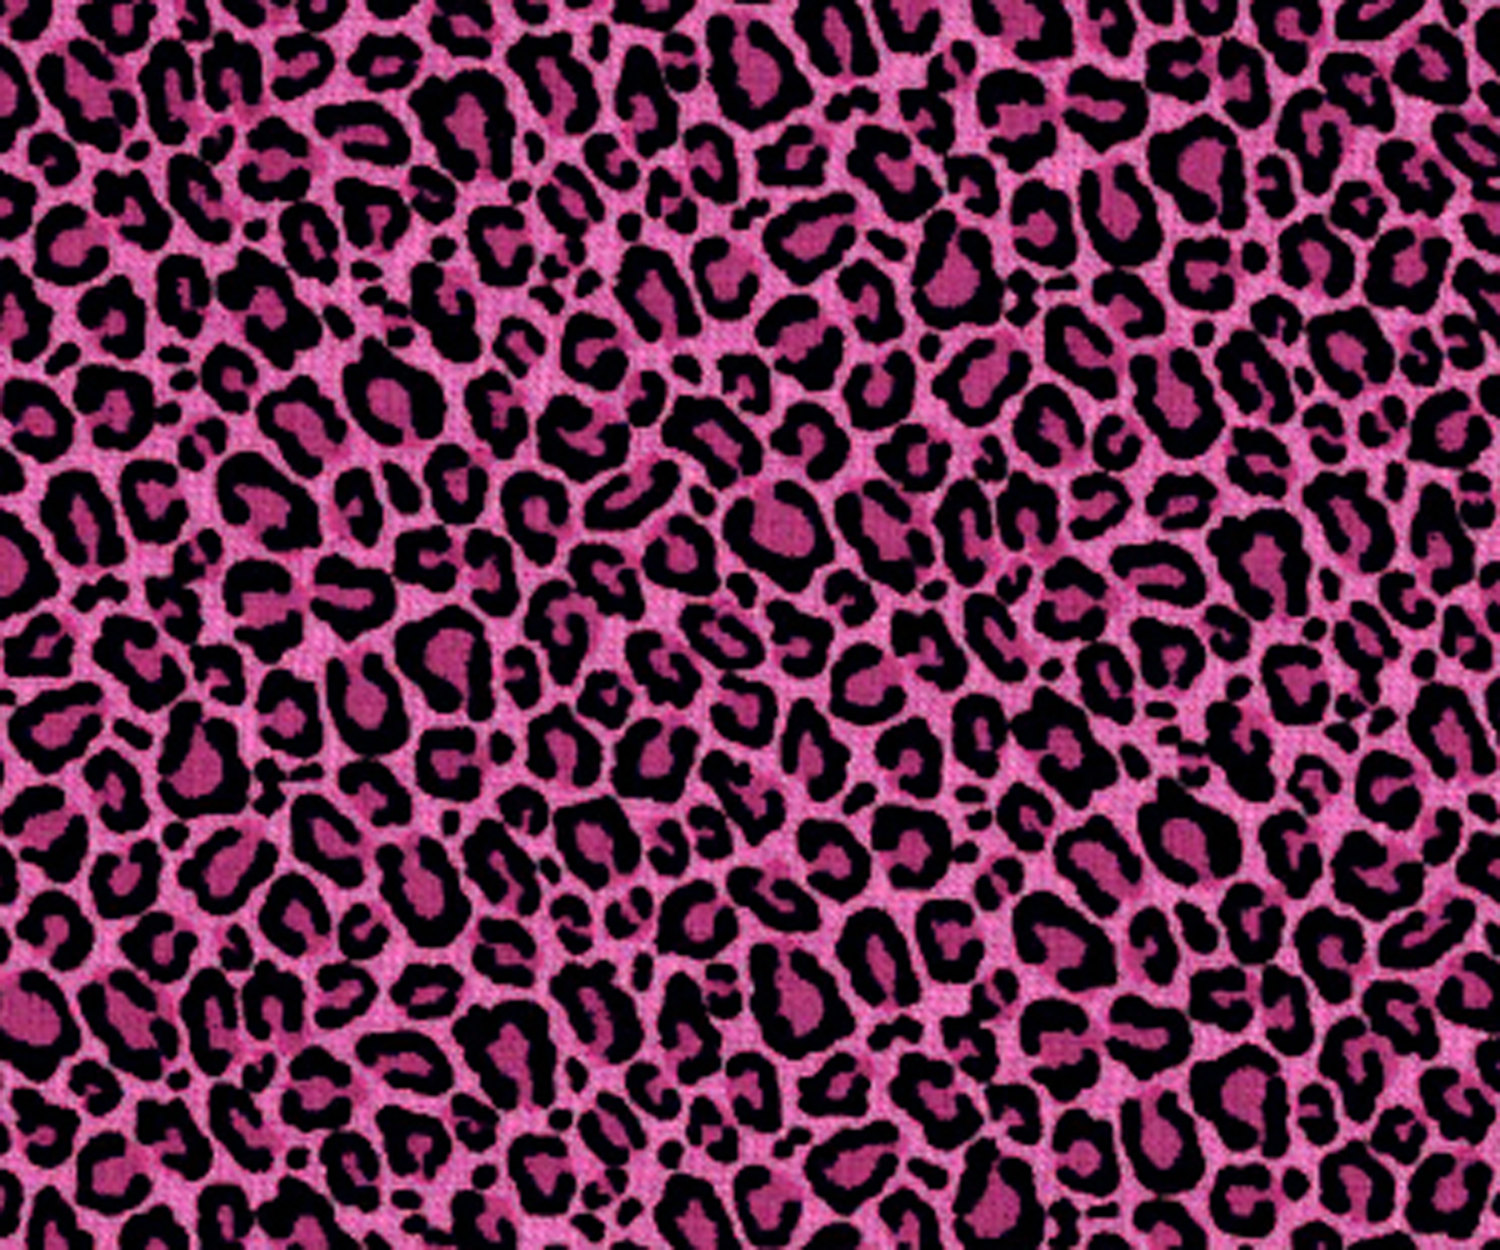 Light pink cheetah print background - photo#35